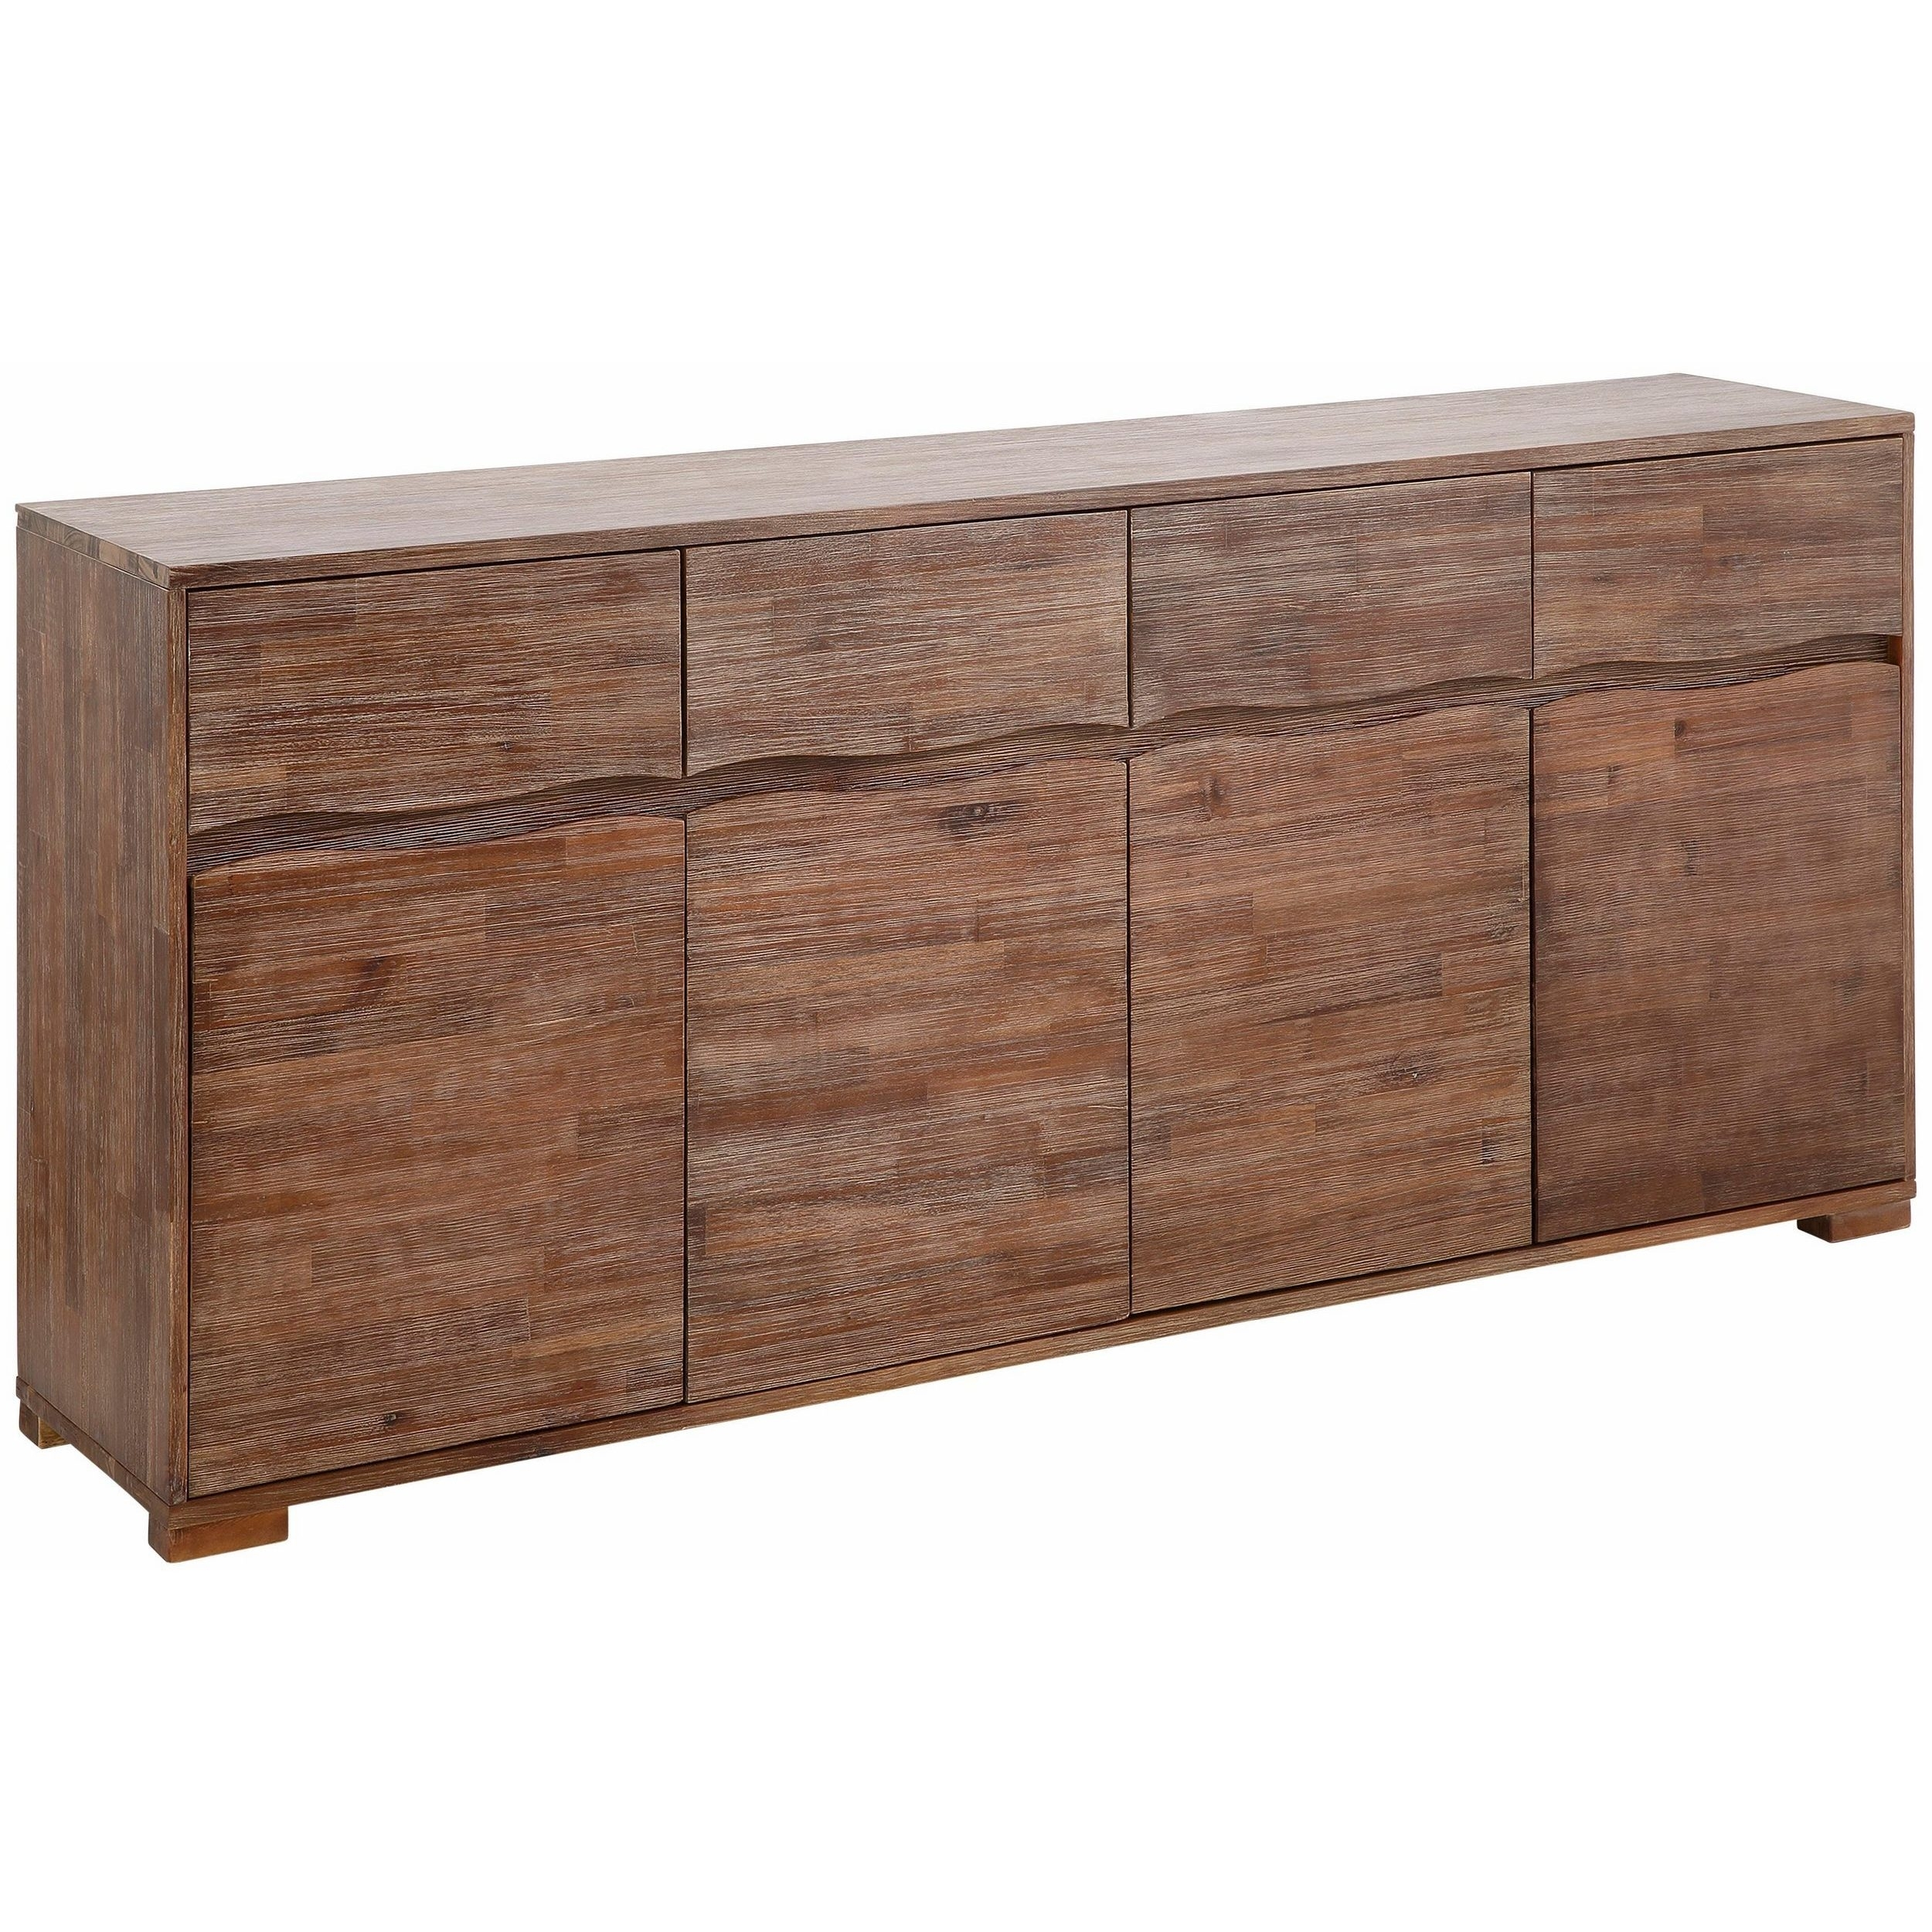 Shop Surf Sideboard With 4 Doors And 4 Drawers, Acacia Wood - On pertaining to Acacia Wood 4-Door Sideboards (Image 22 of 30)